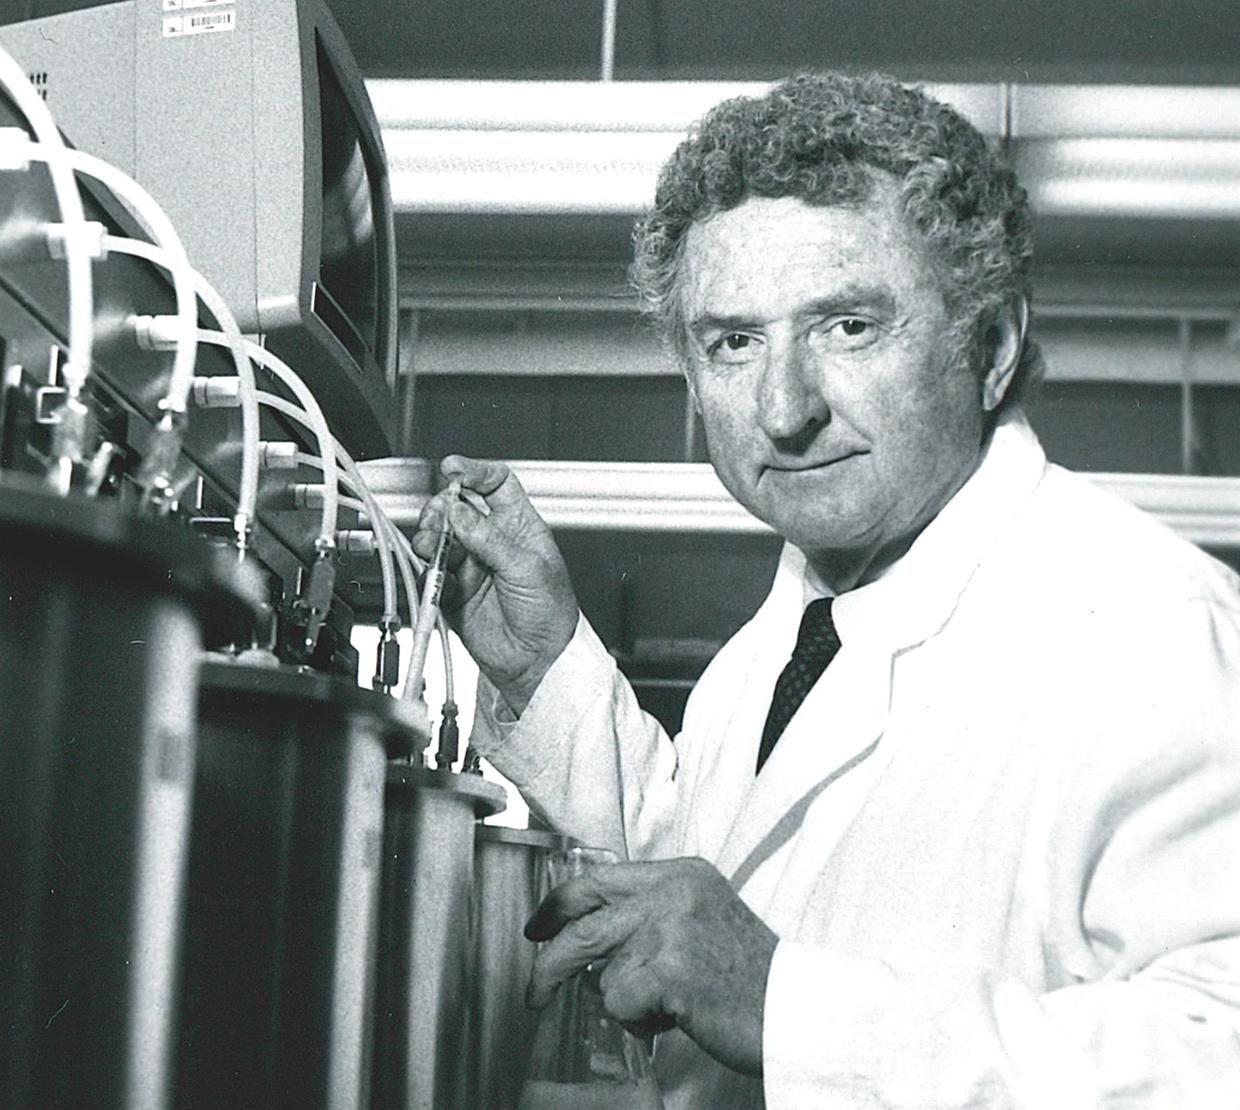 black and white photo of William Sandine working with lab equipment